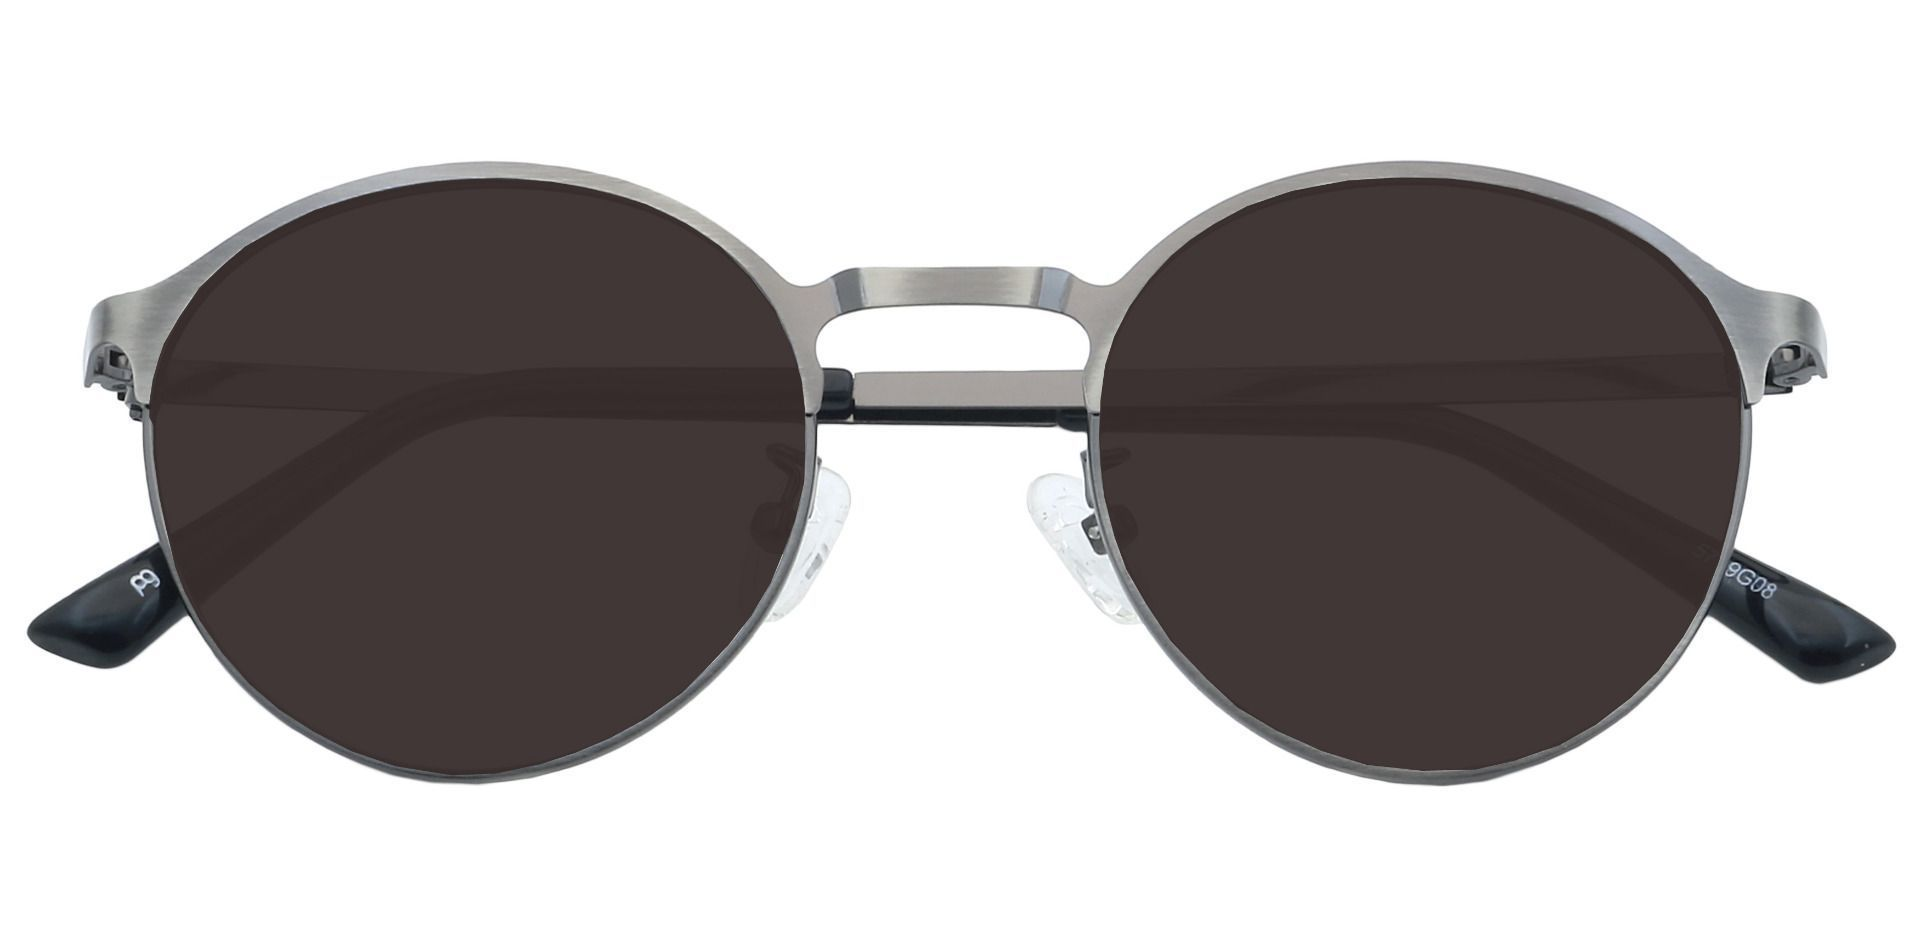 Perry Round Prescription Sunglasses - Gray Frame With Gray Lenses